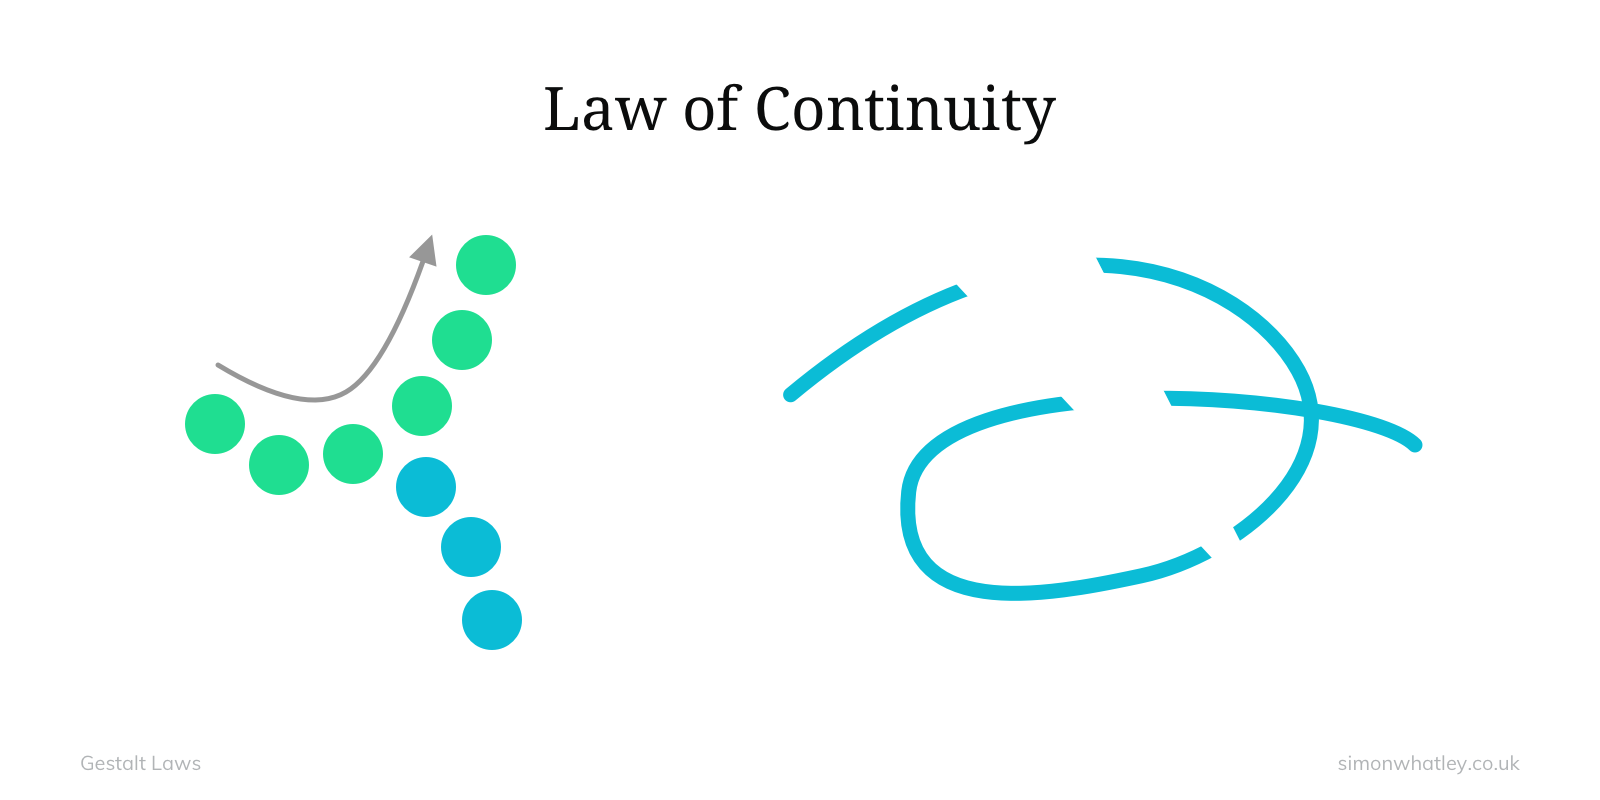 Gestalt: Law of Continuity